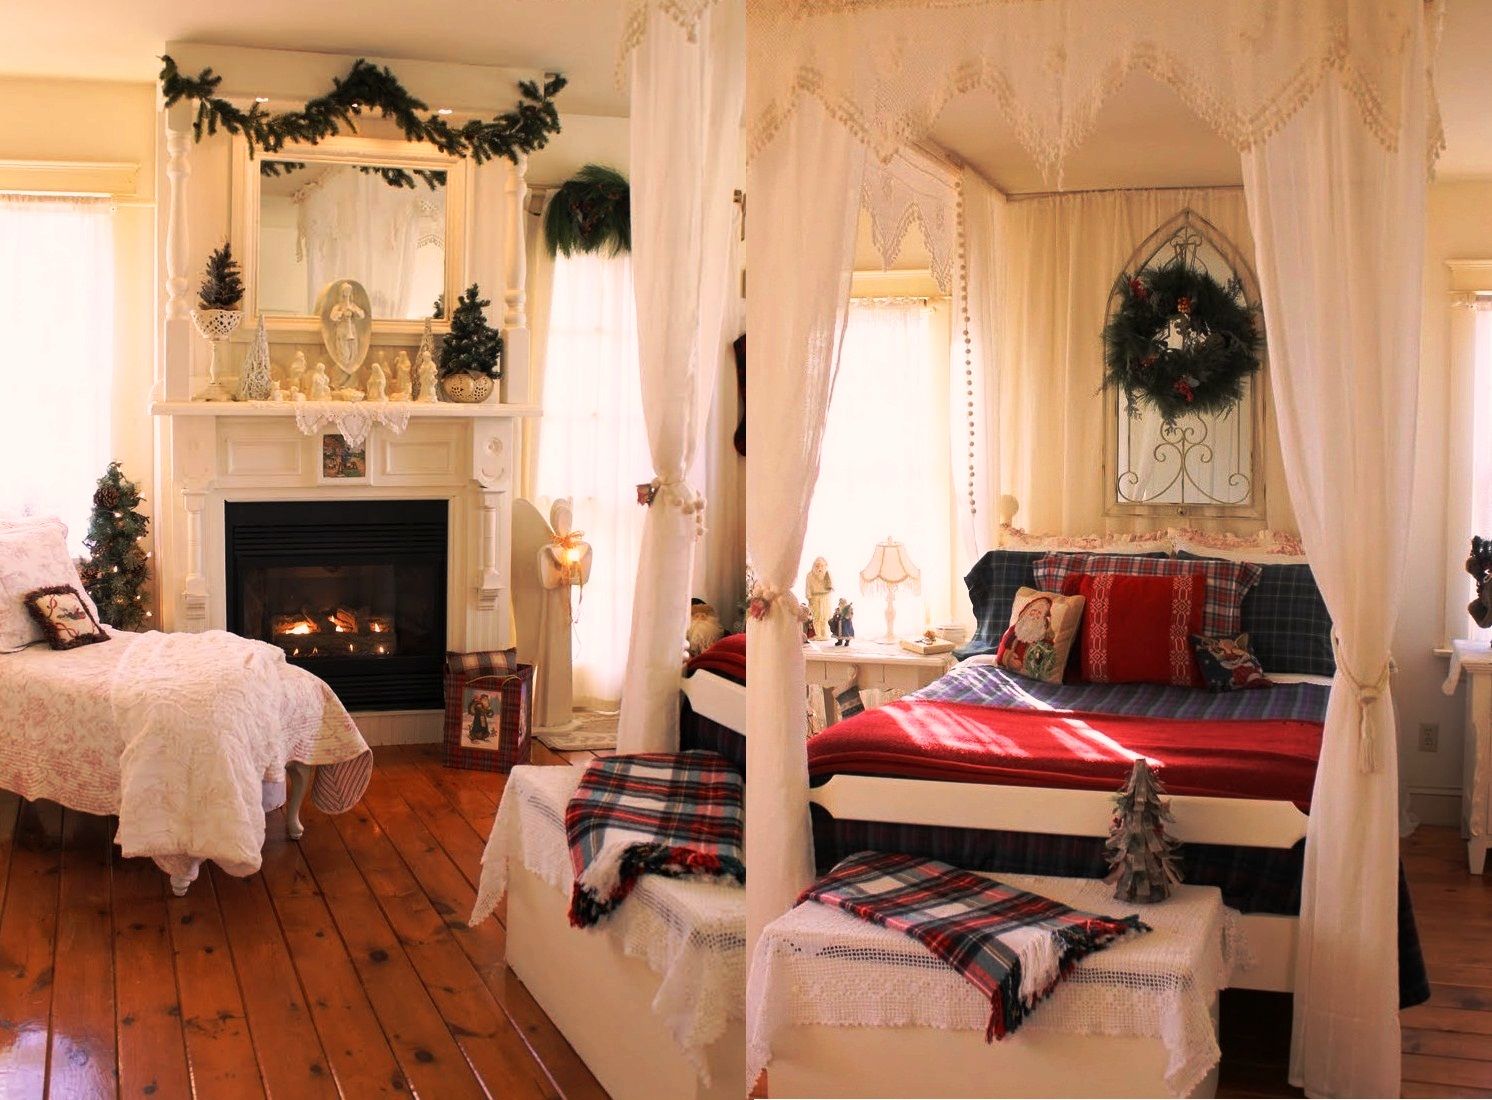 30 christmas bedroom decorations ideas for Design decoration ideas